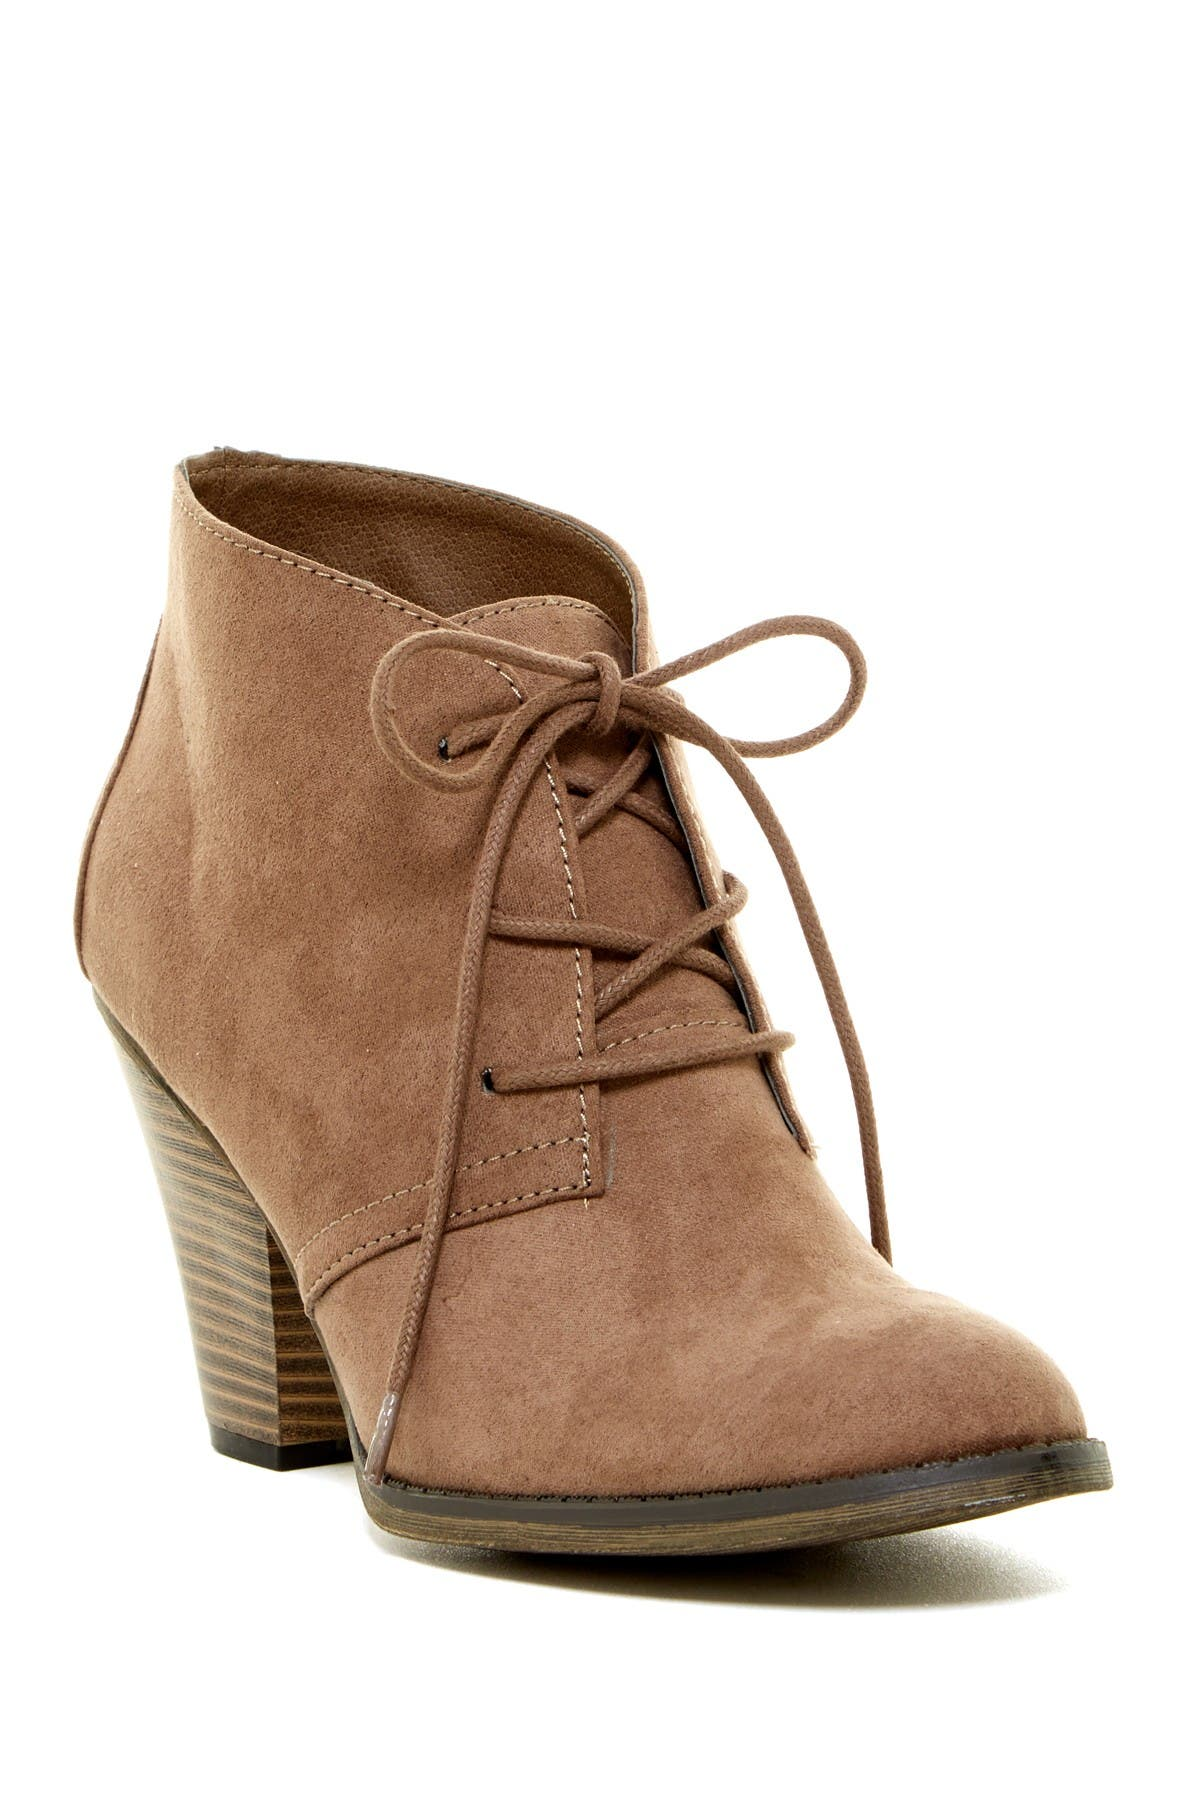 Image of MIA Shawna Lace-Up Bootie